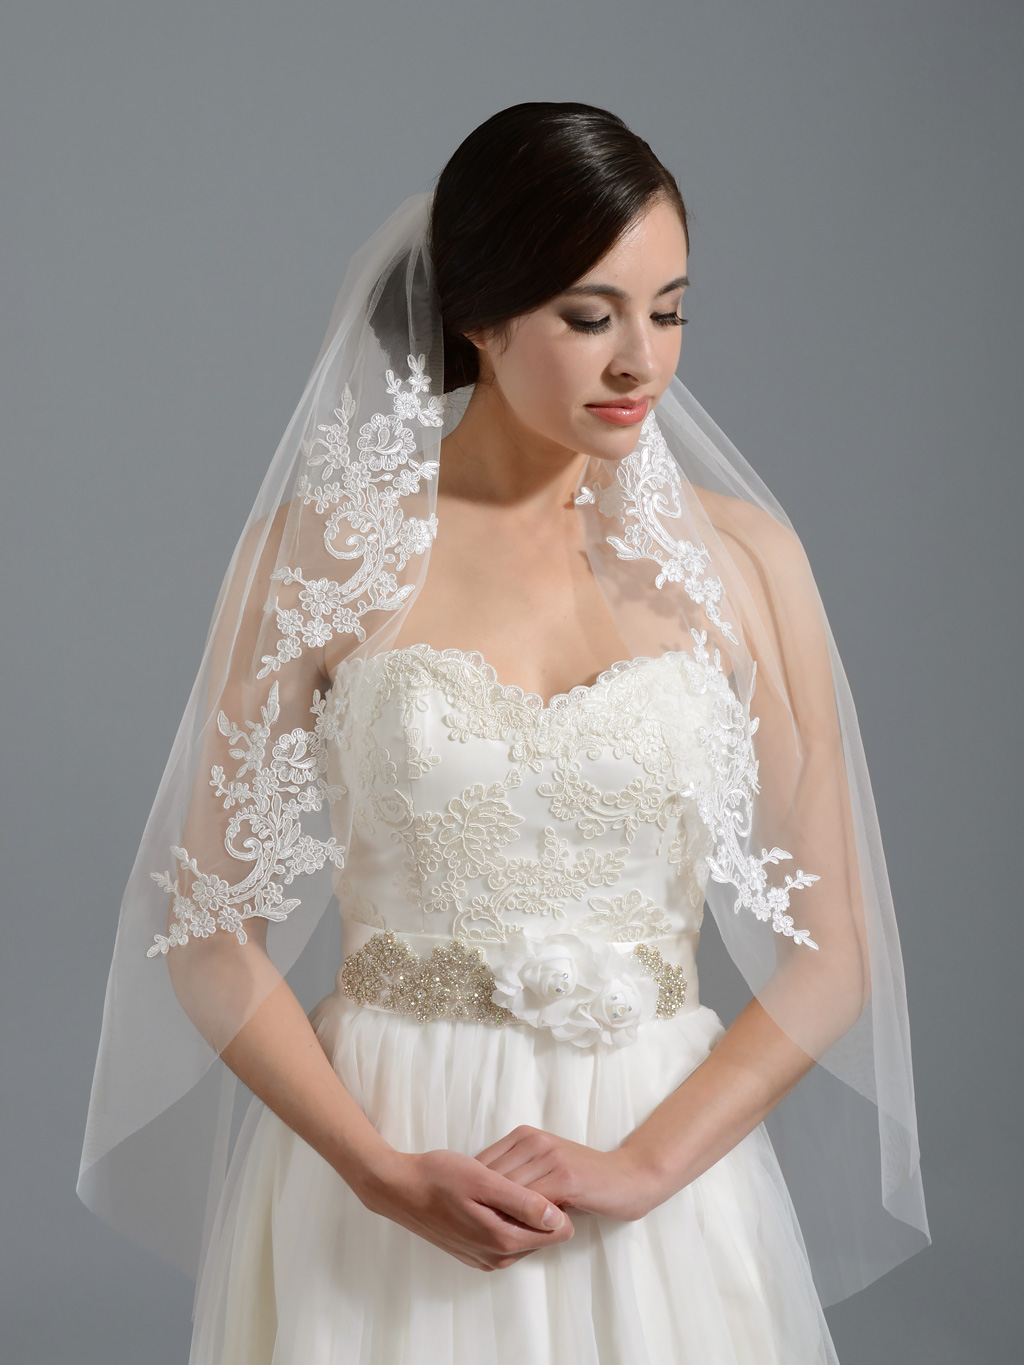 Ivory elbow wedding veil Vn alencon lace p wedding veils